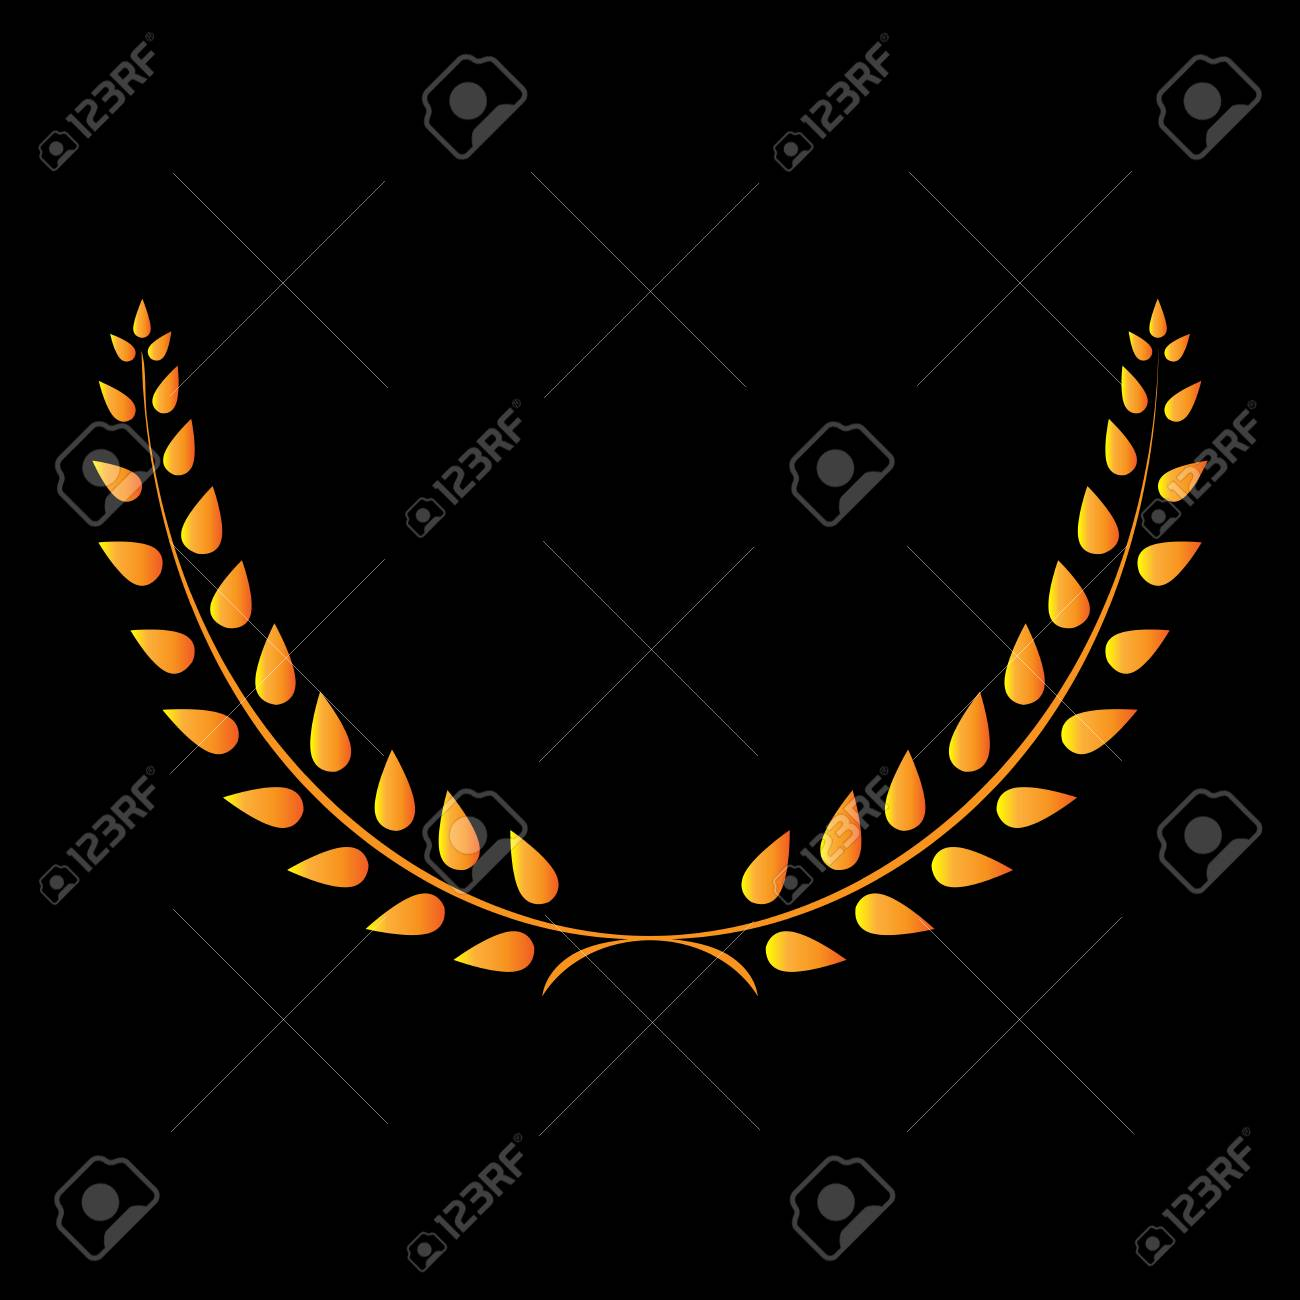 Sign Laurel Wreath Gold Golden Icon Isolated On Black Background